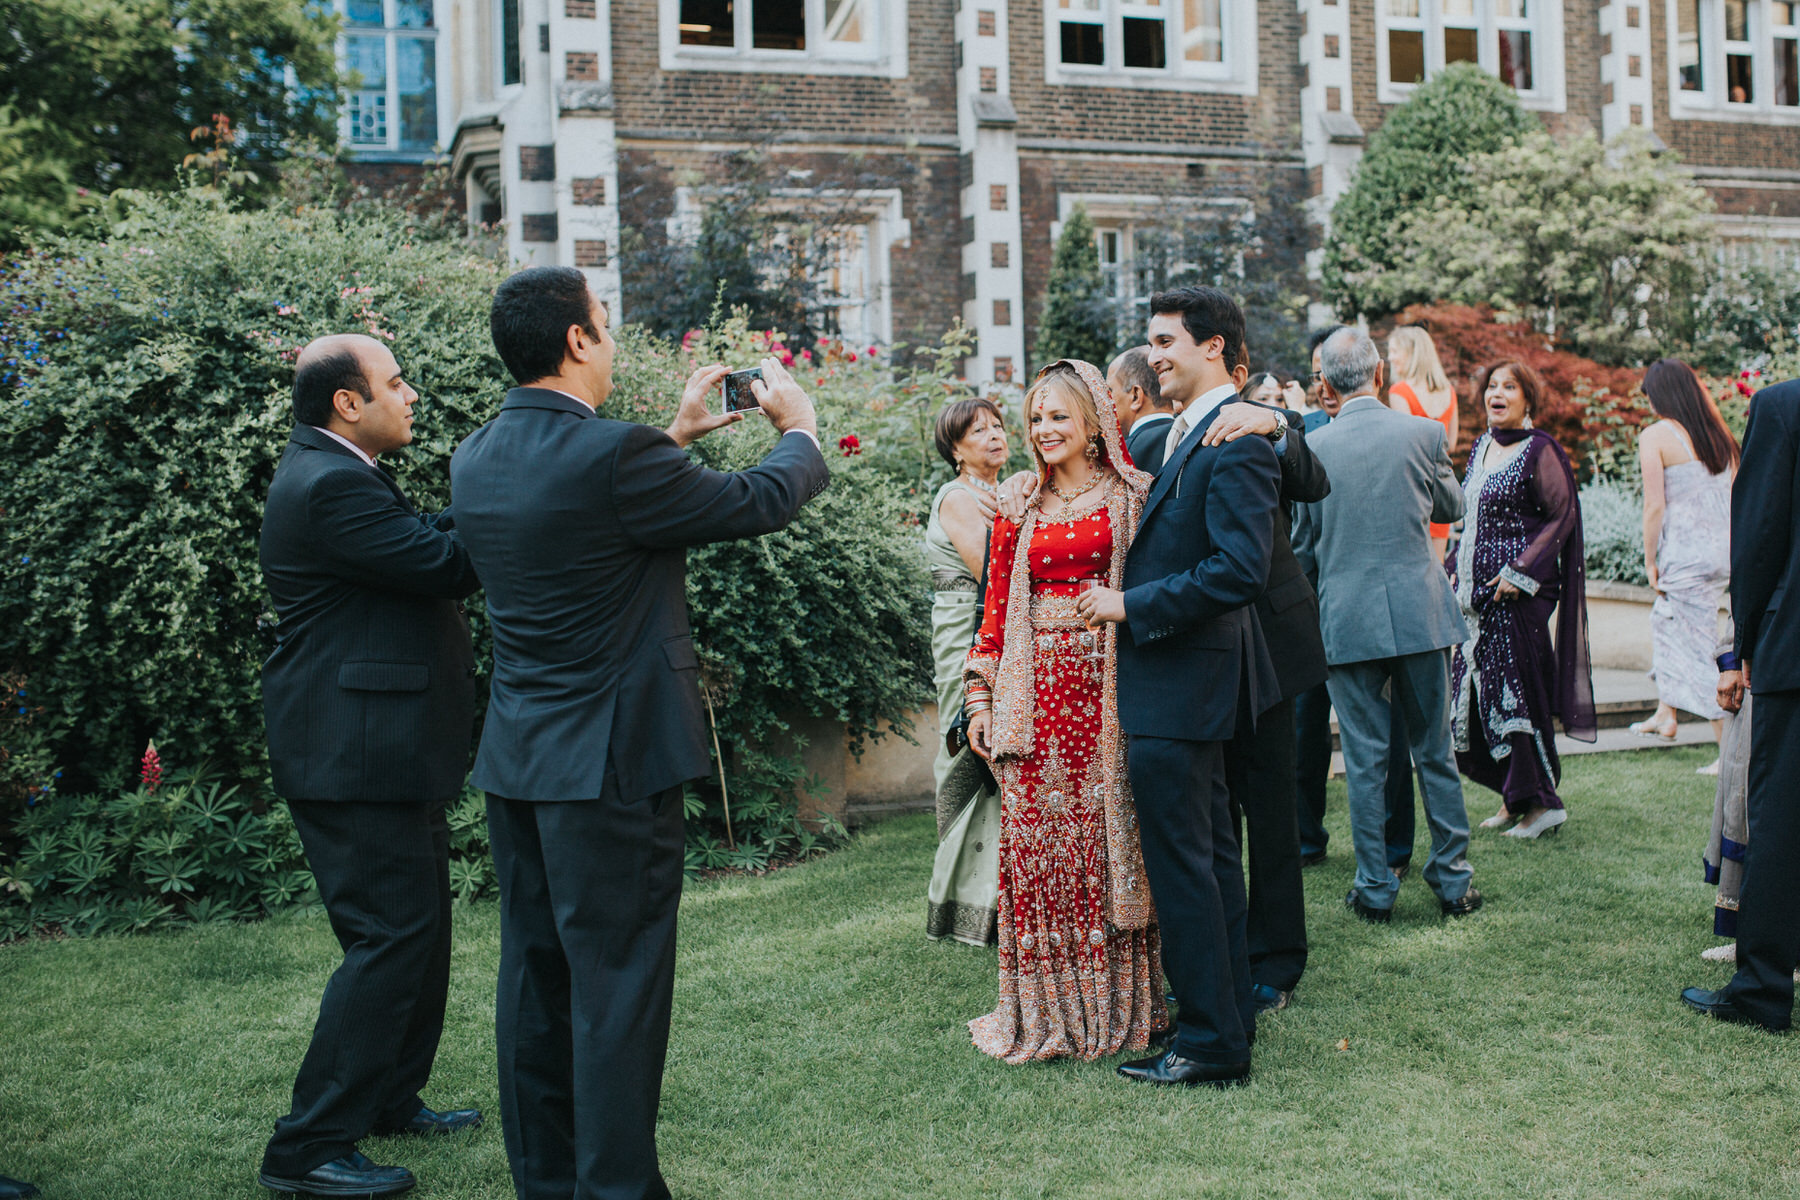 155-Anglo-Asian-Wedding-guests-photographing-bride-groom.jpg